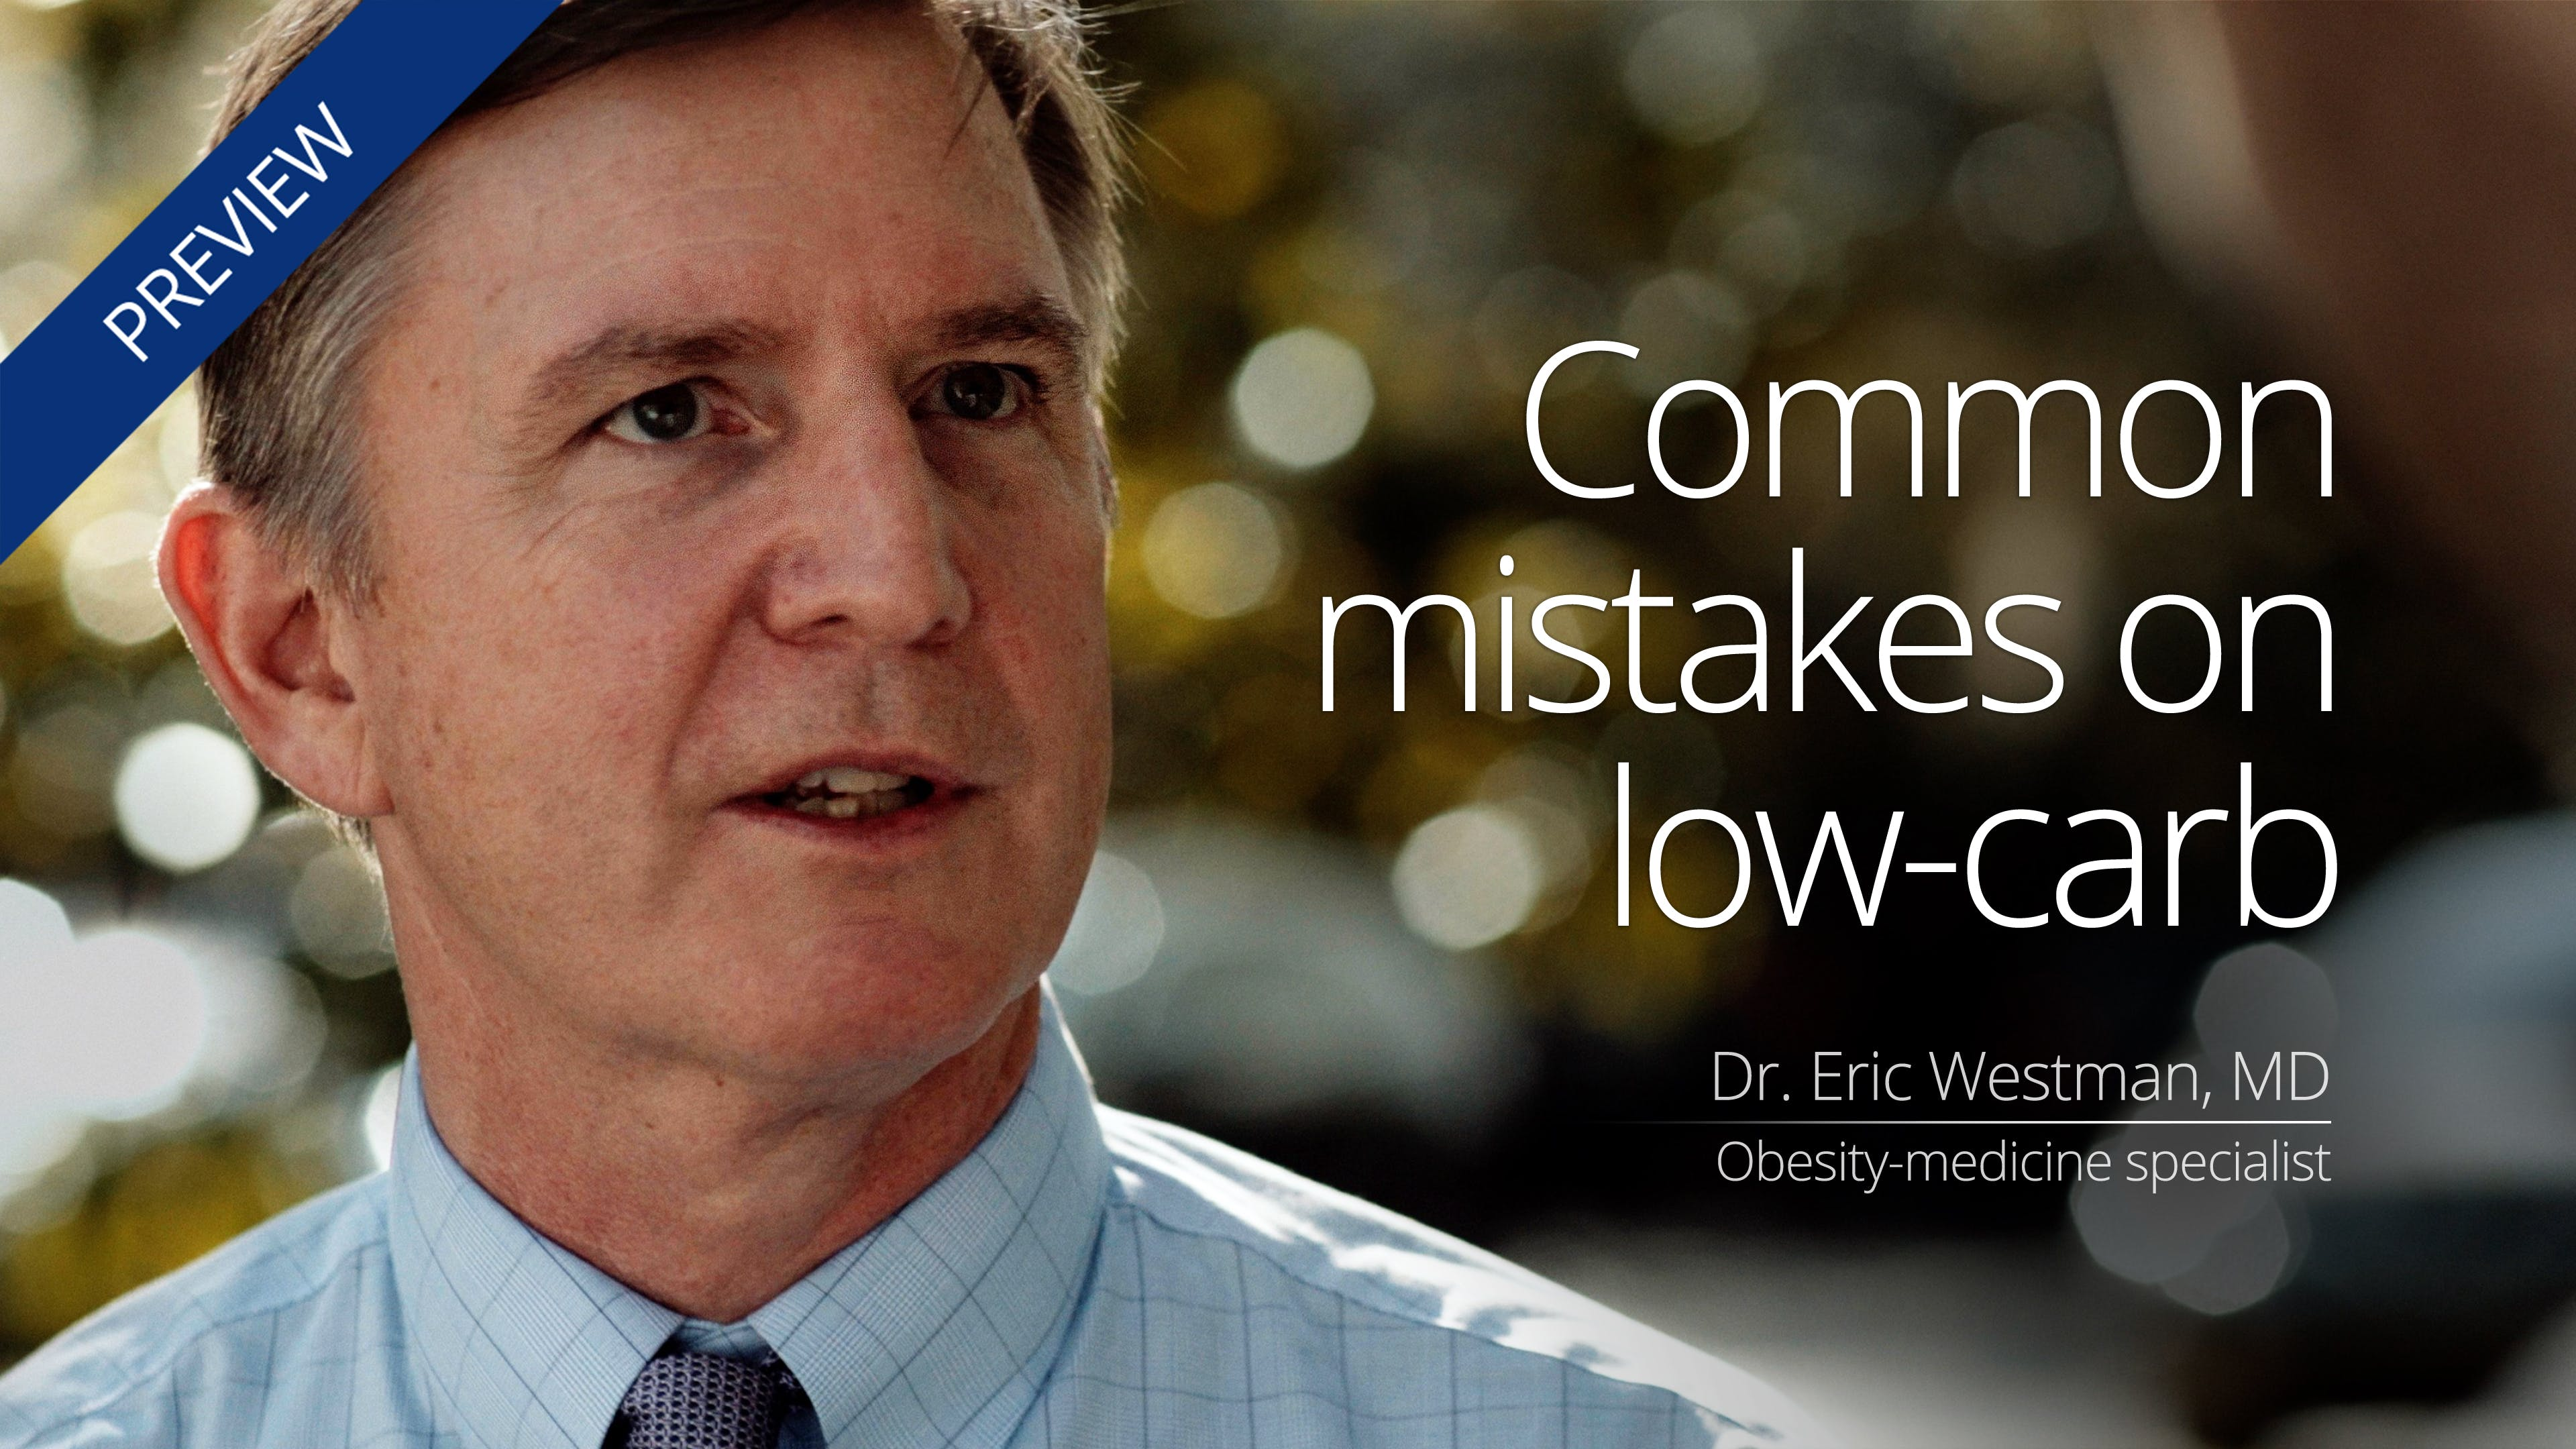 Our most popular video of 2017: Common mistakes on low carb